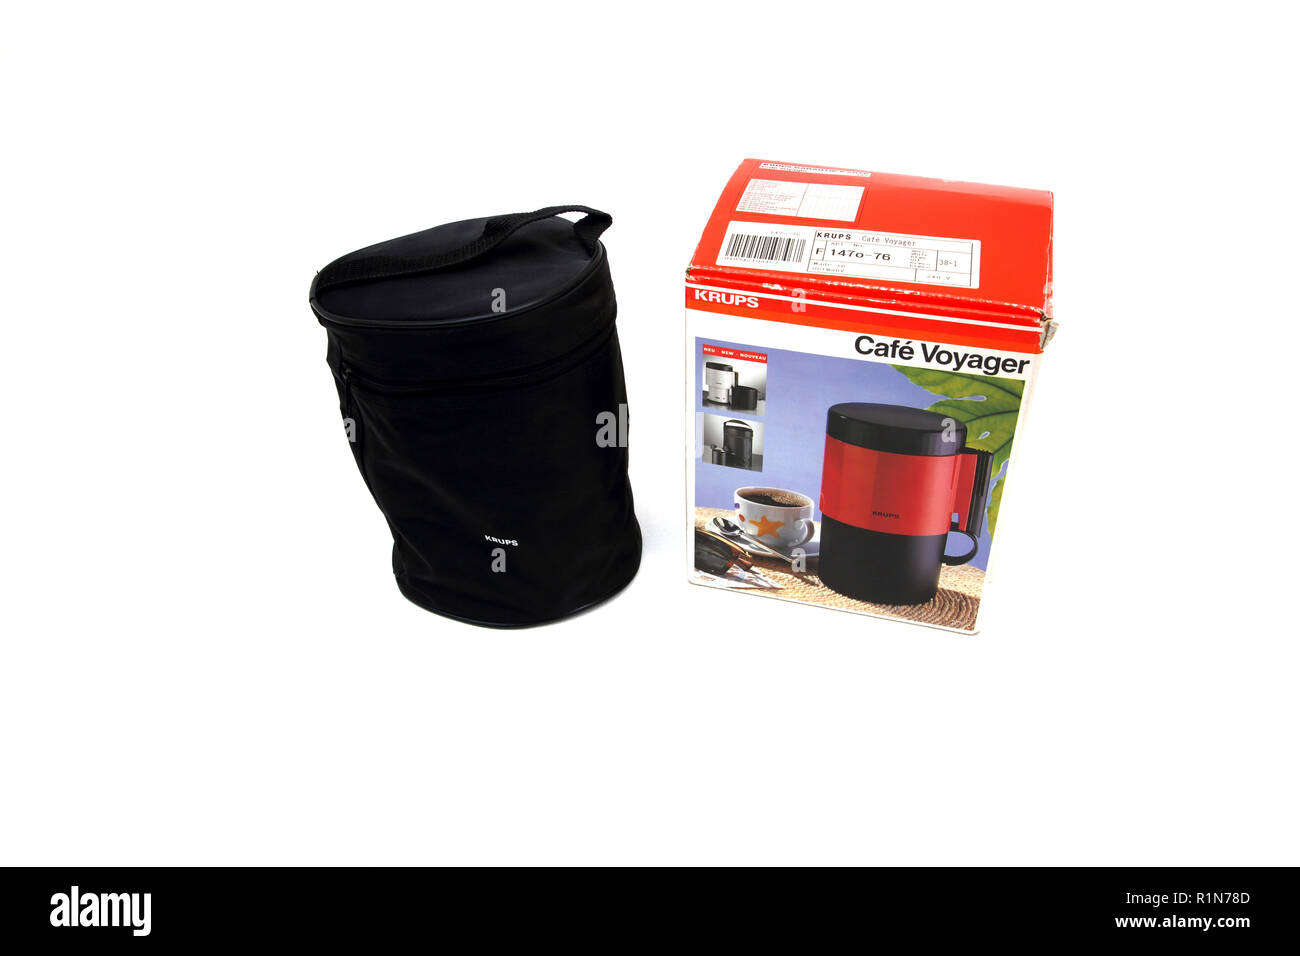 Krups Cafe Voyager Travel Size Coffee Maker - Stock Image